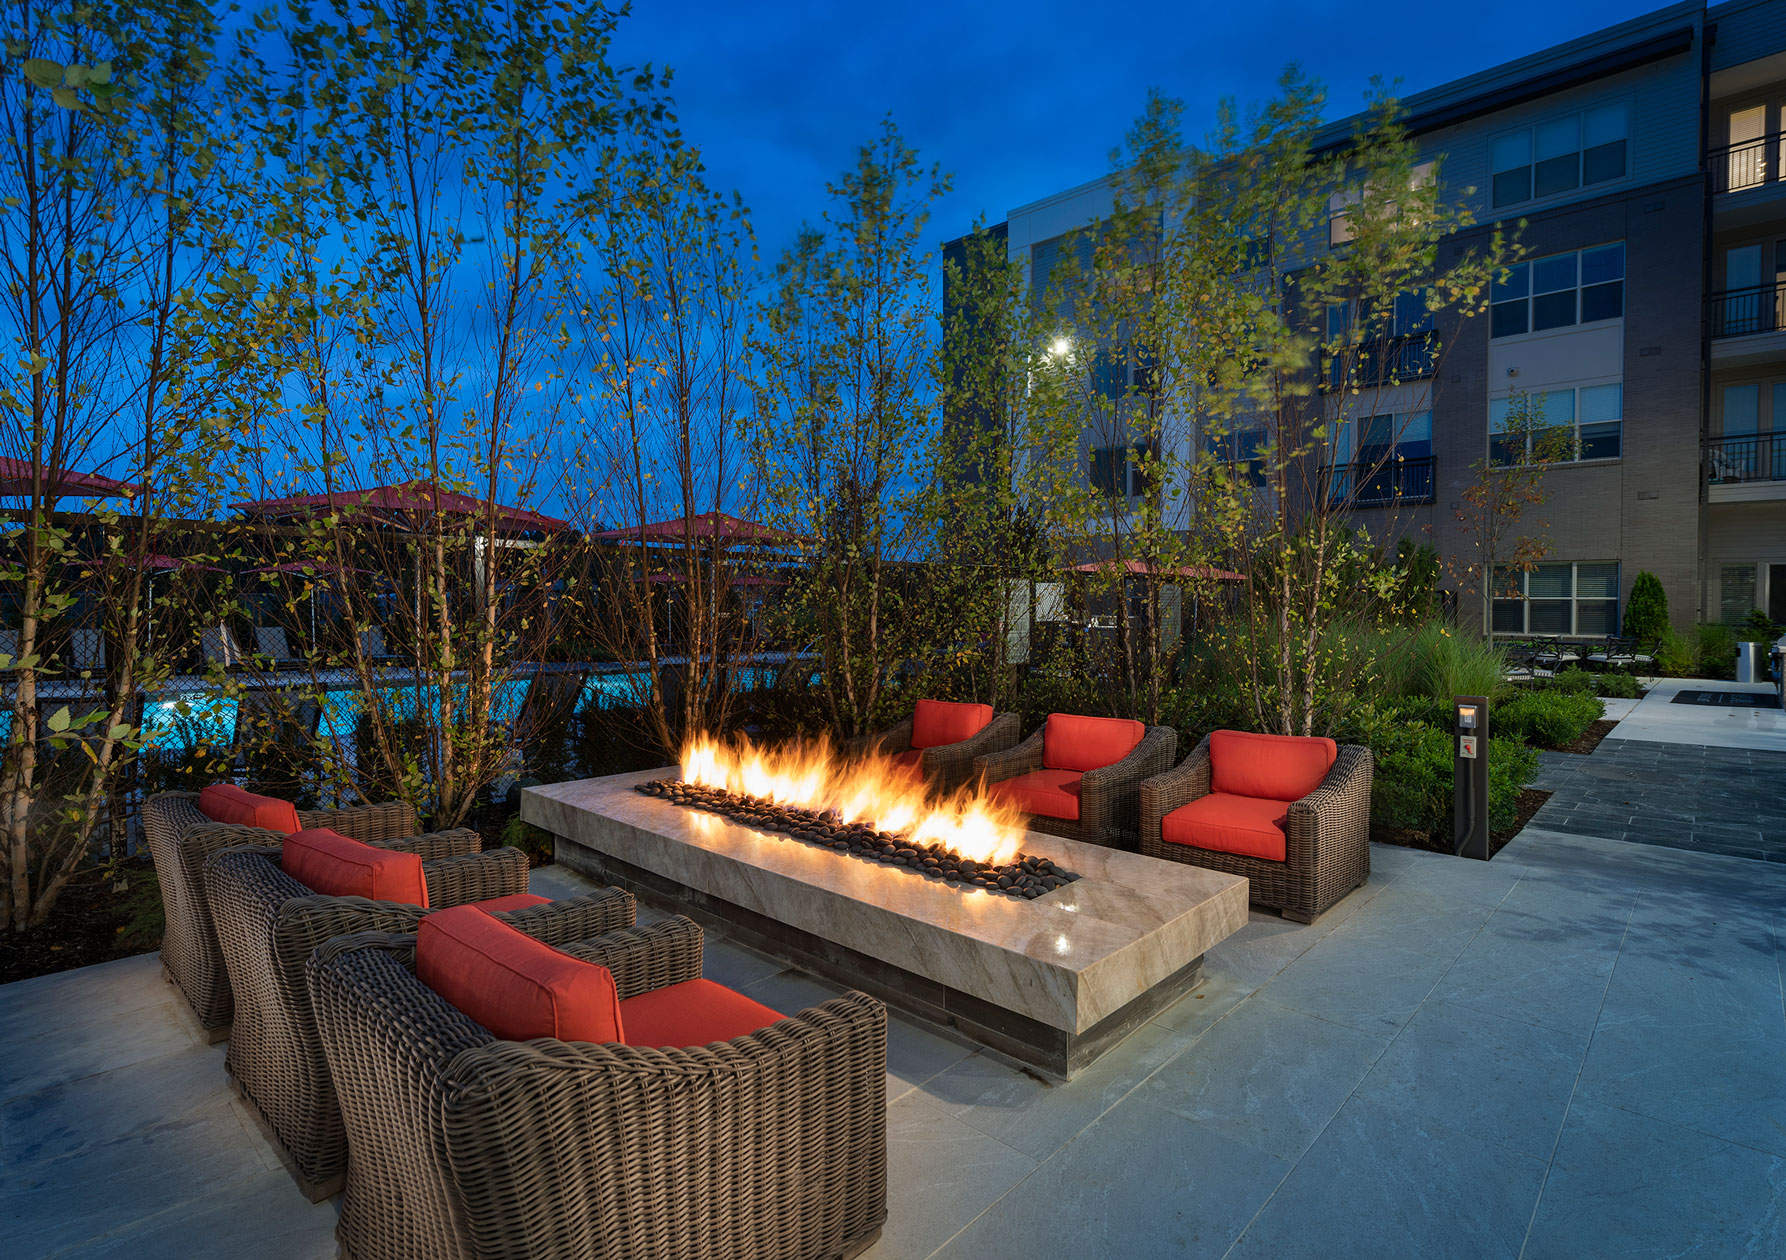 Dusk shot showing outdoor seating by the pool and fire pit